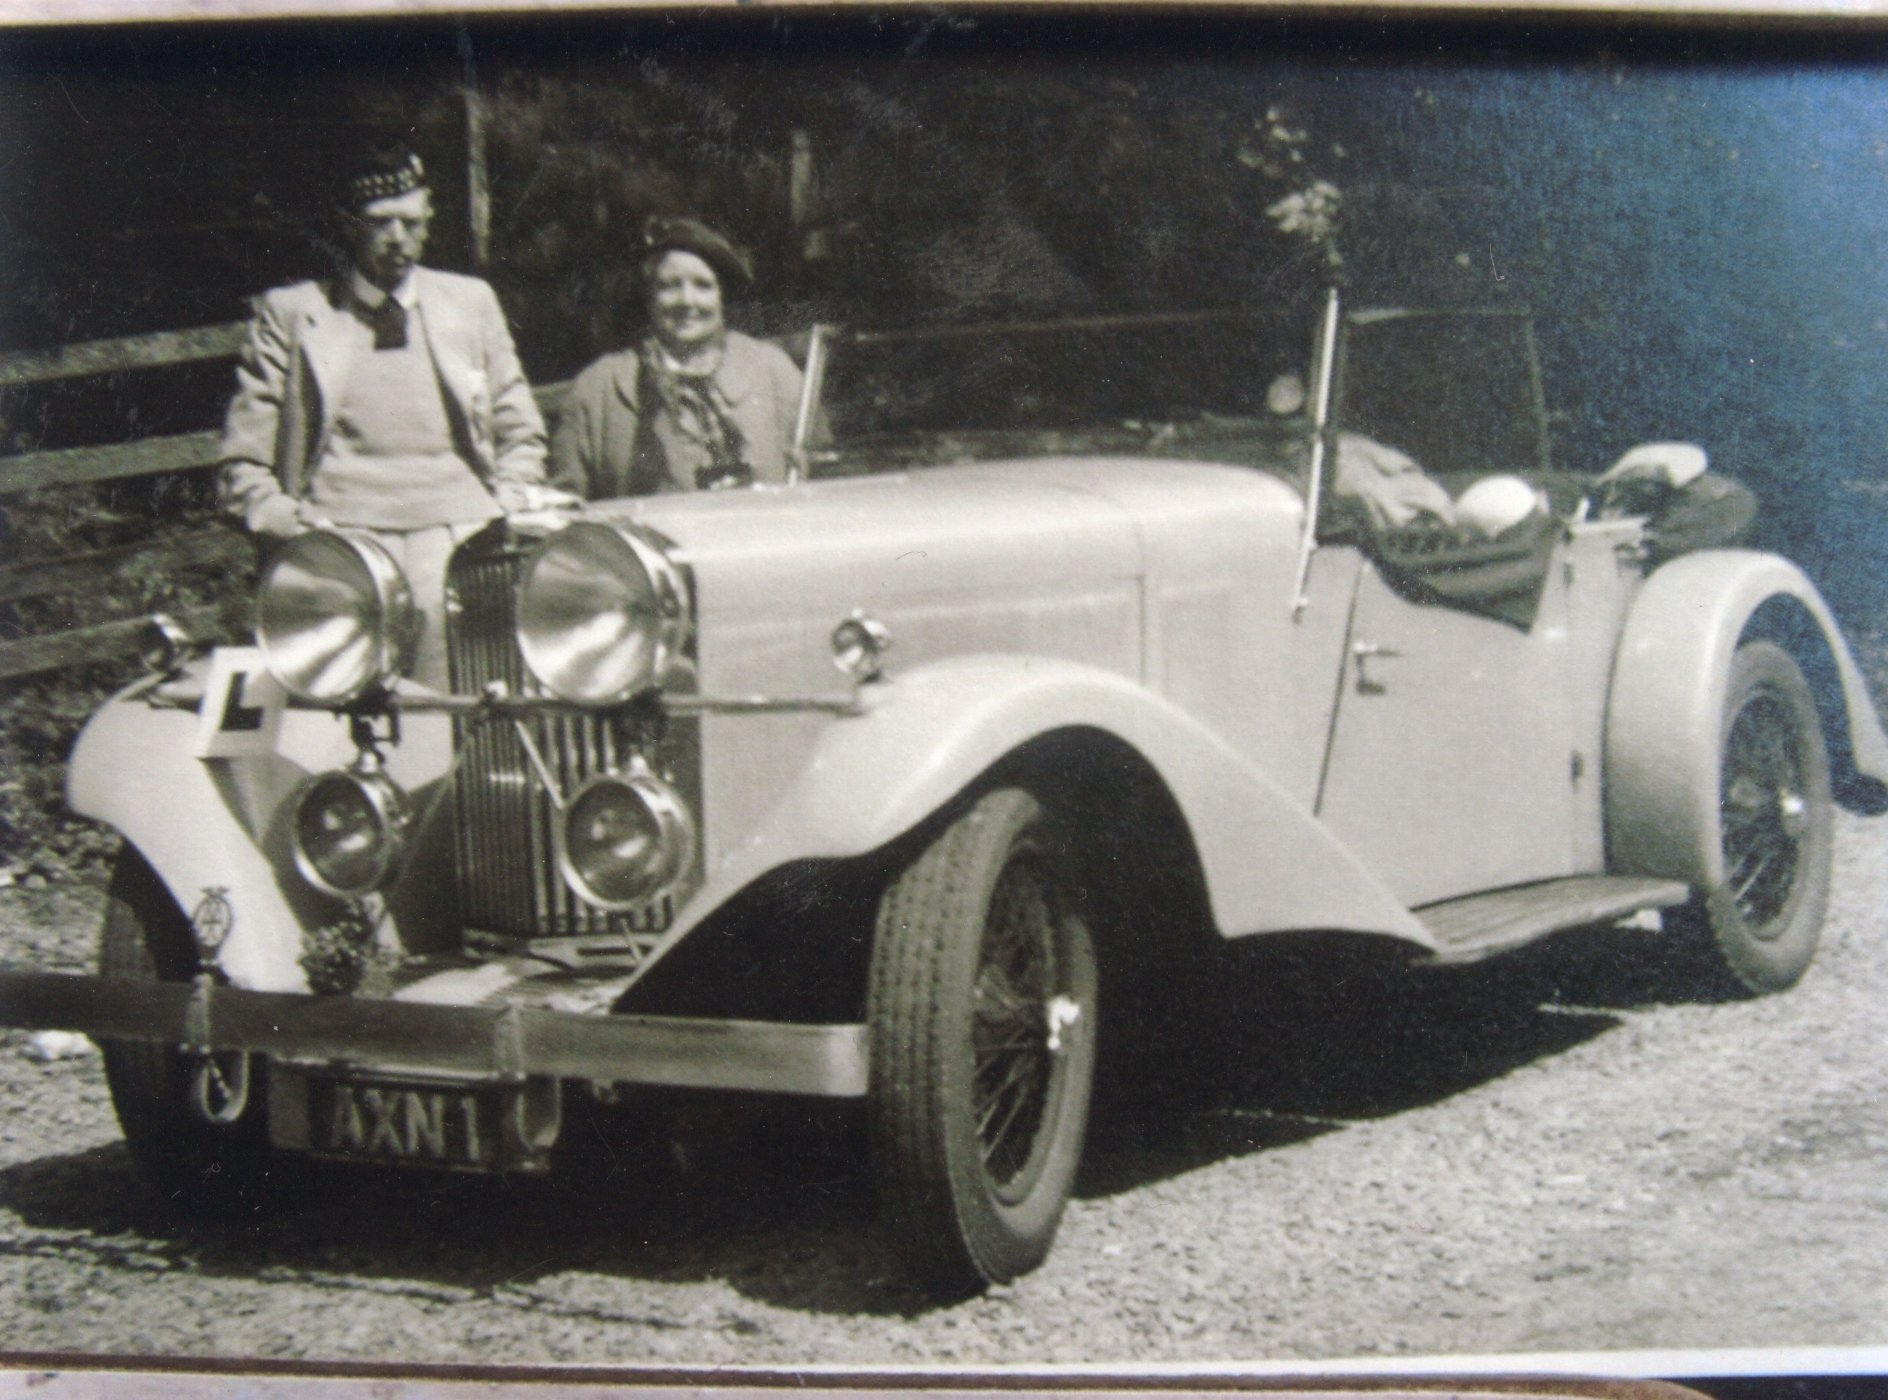 'AXN 1' touring whilst owned by the Lang family